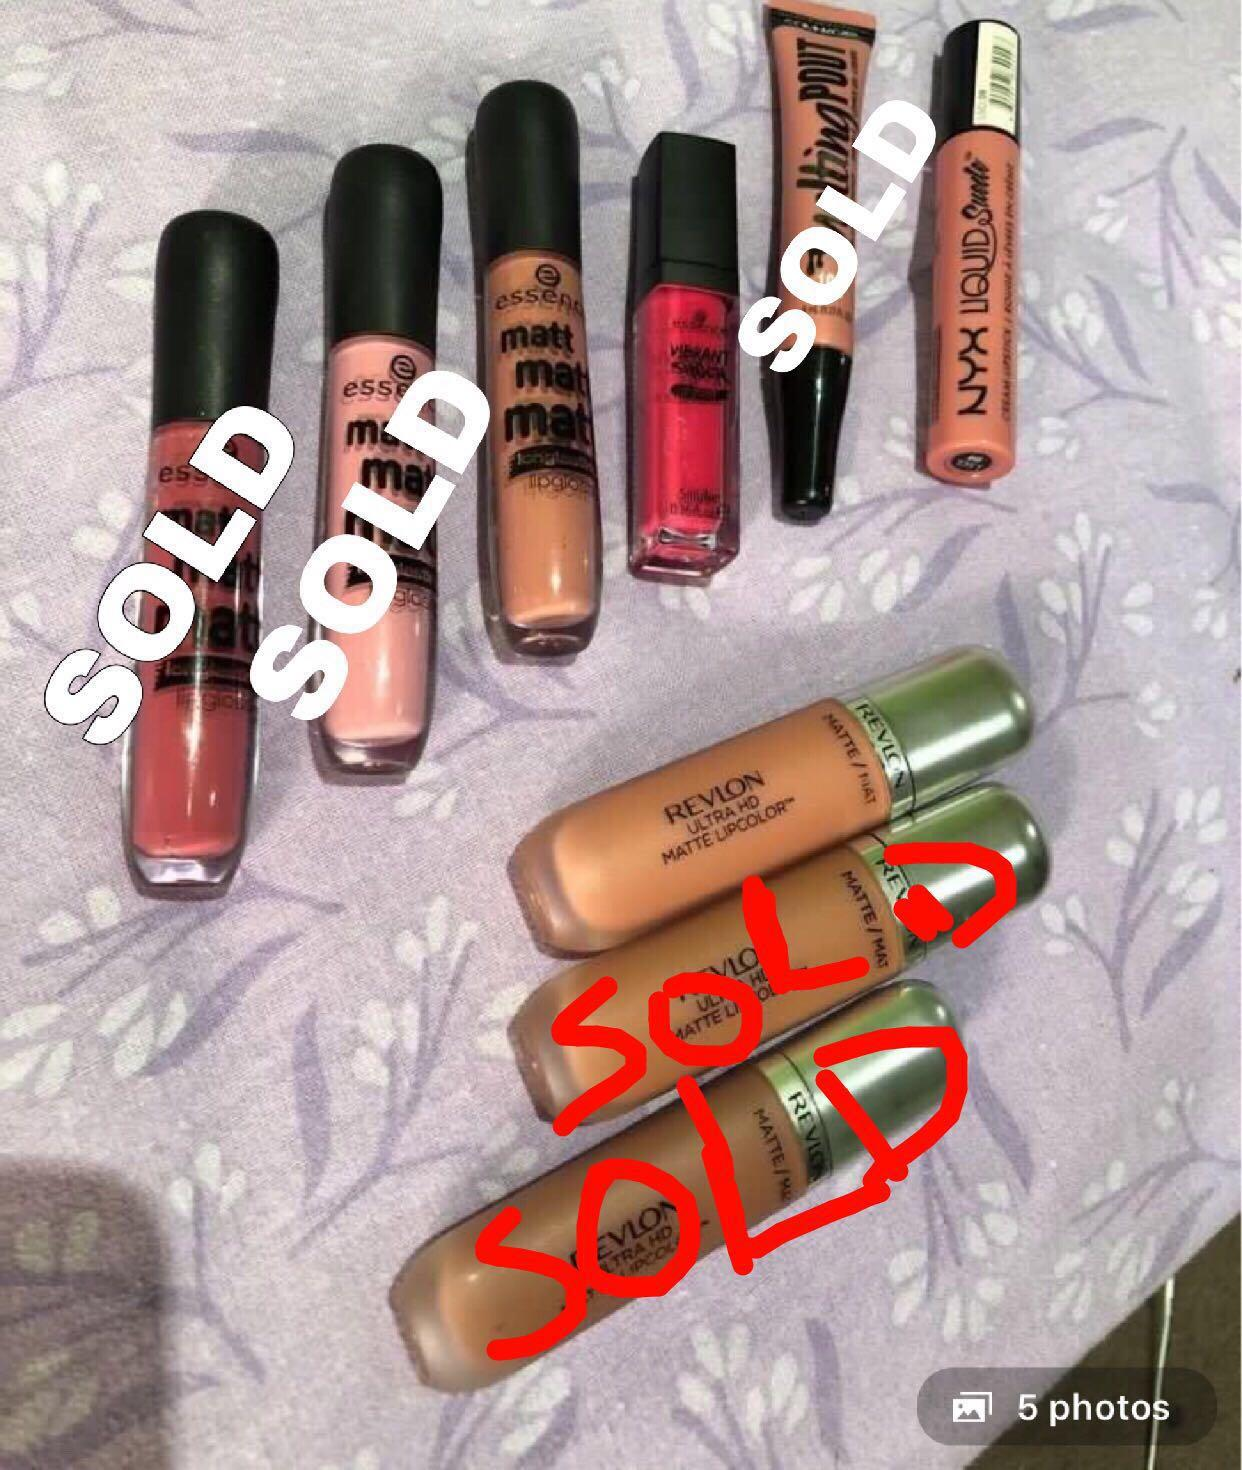 CLEARANCE $2 each! Nyx, Revlon, covergirl and essence lipsticks assorted